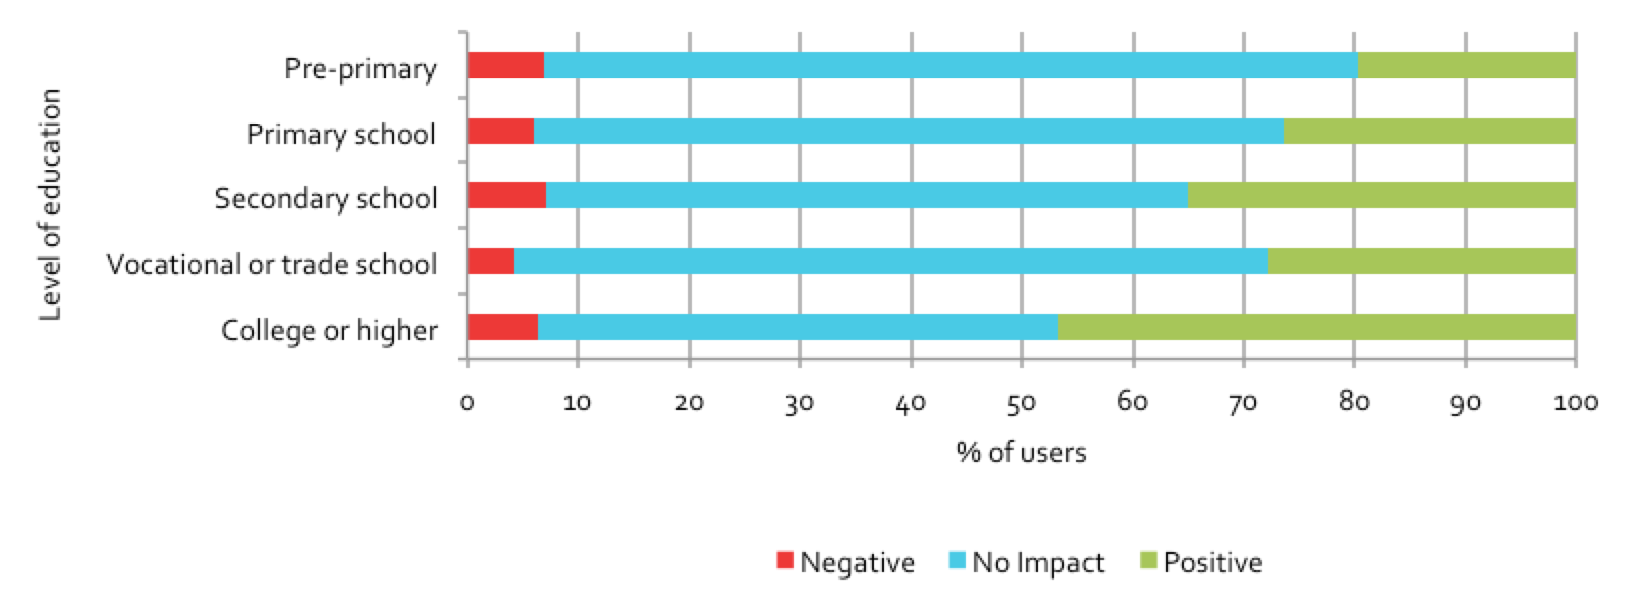 Figure 5.21: Users reporting positive impact on health, by education level